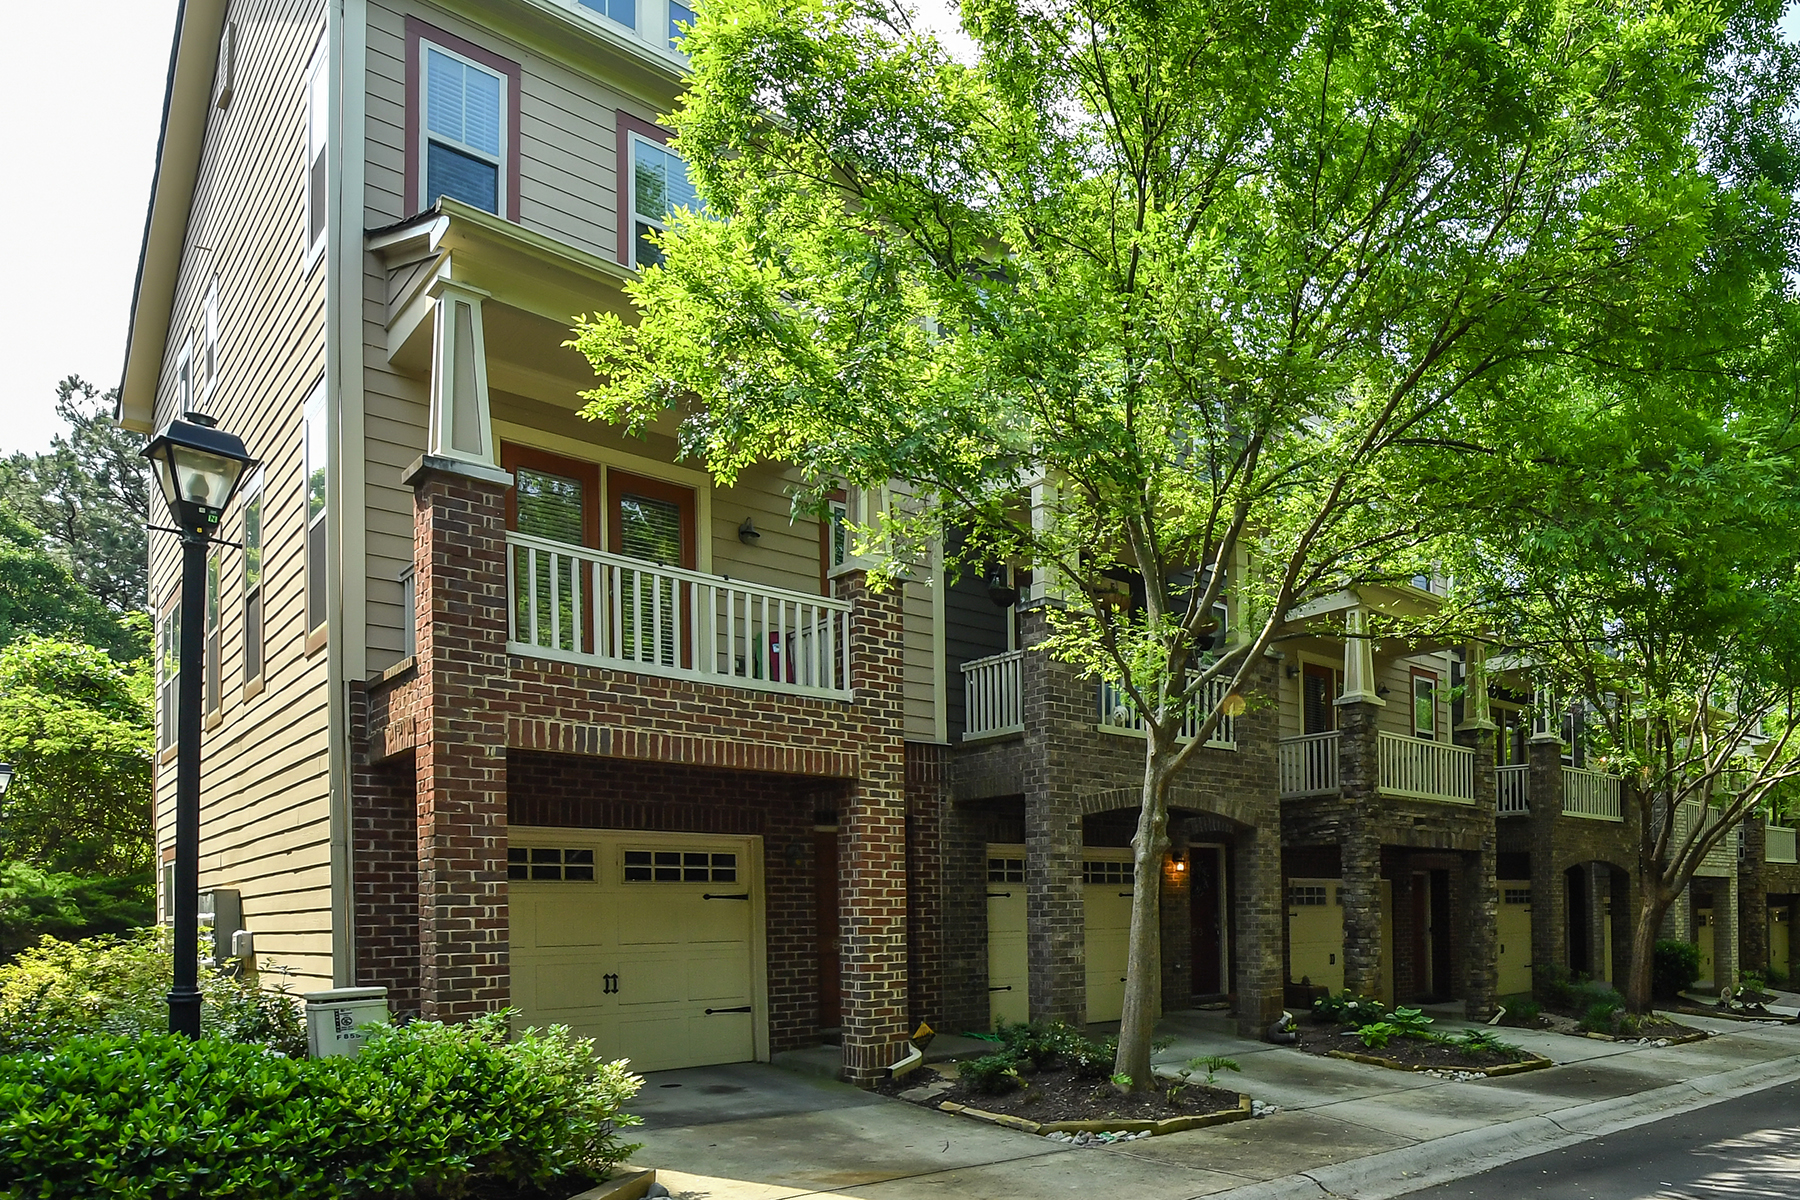 Single Family Home for Sale at Three-Level Townhome Overlooking Future Beltline 855 Commonwealth Atlanta, Georgia 30312 United States